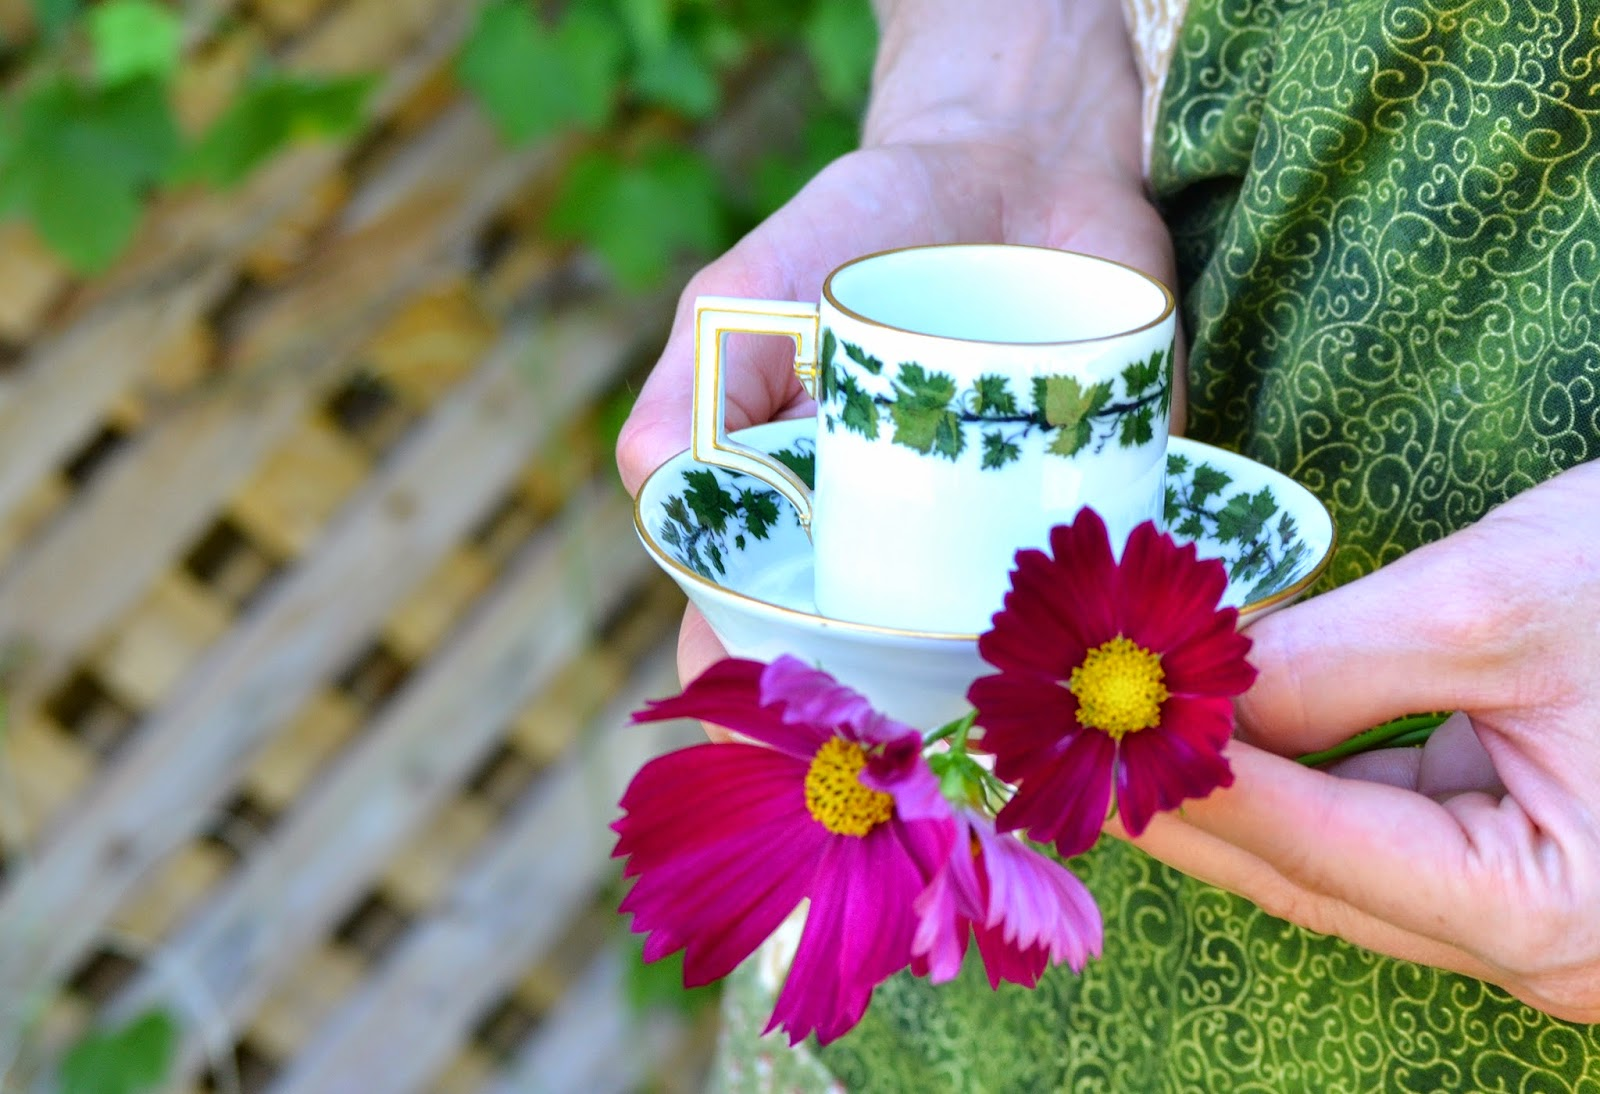 https://www.etsy.com/listing/205361240/english-ivy-tea-cup-saucer-single?ref=shop_home_active_1&ga_search_query=cup